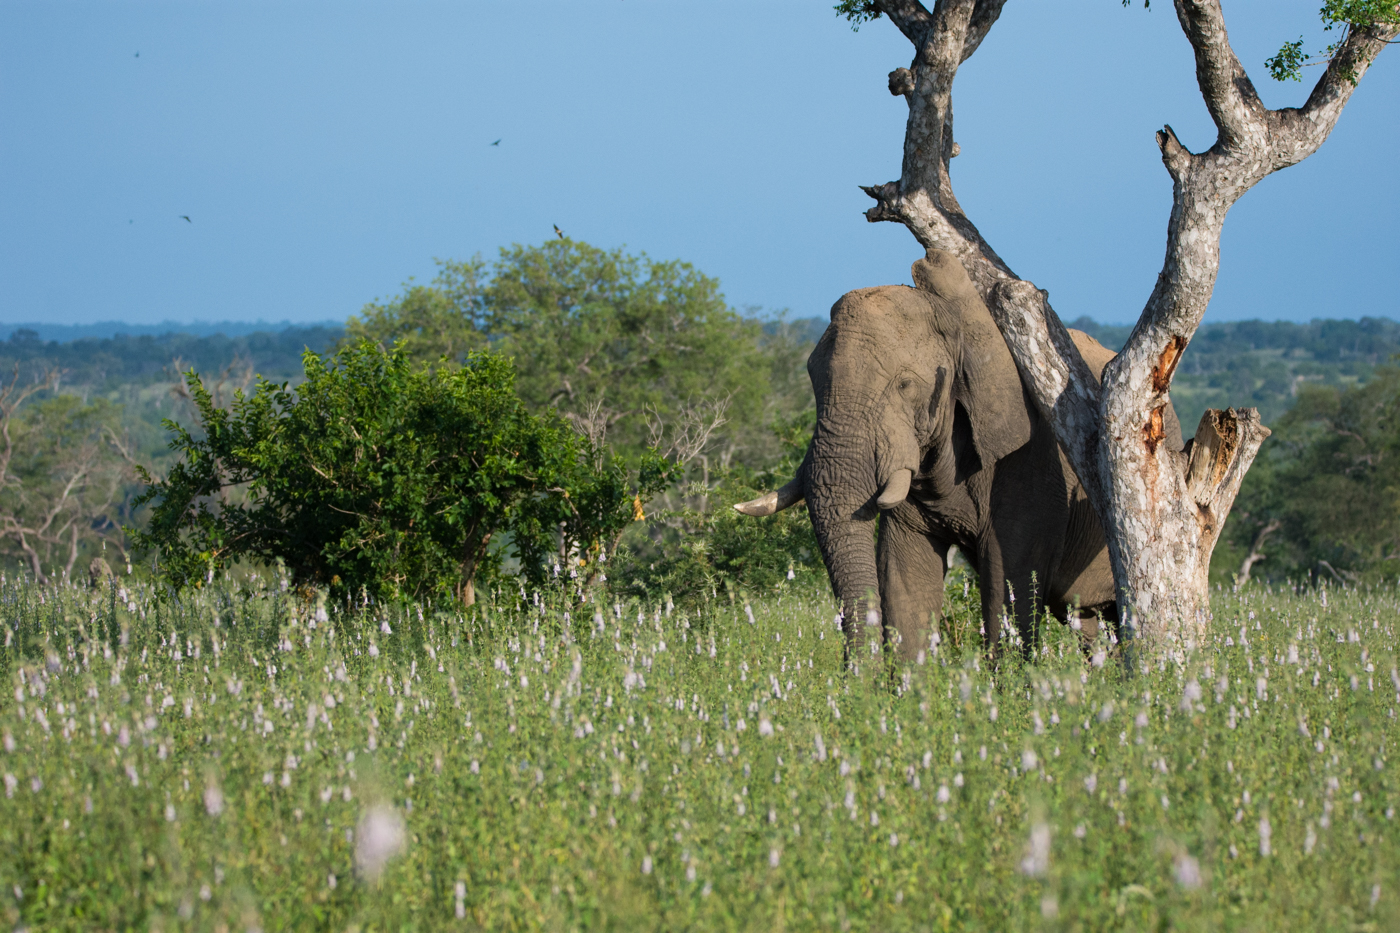 This elephant bull pressed himself up against a marula tree, shaking it repeatedly, allowing the ripened marula fruits to fall to the ground which he then devoured. The newly bloomed wild foxglove flowers made for an incredibly beautiful scene.